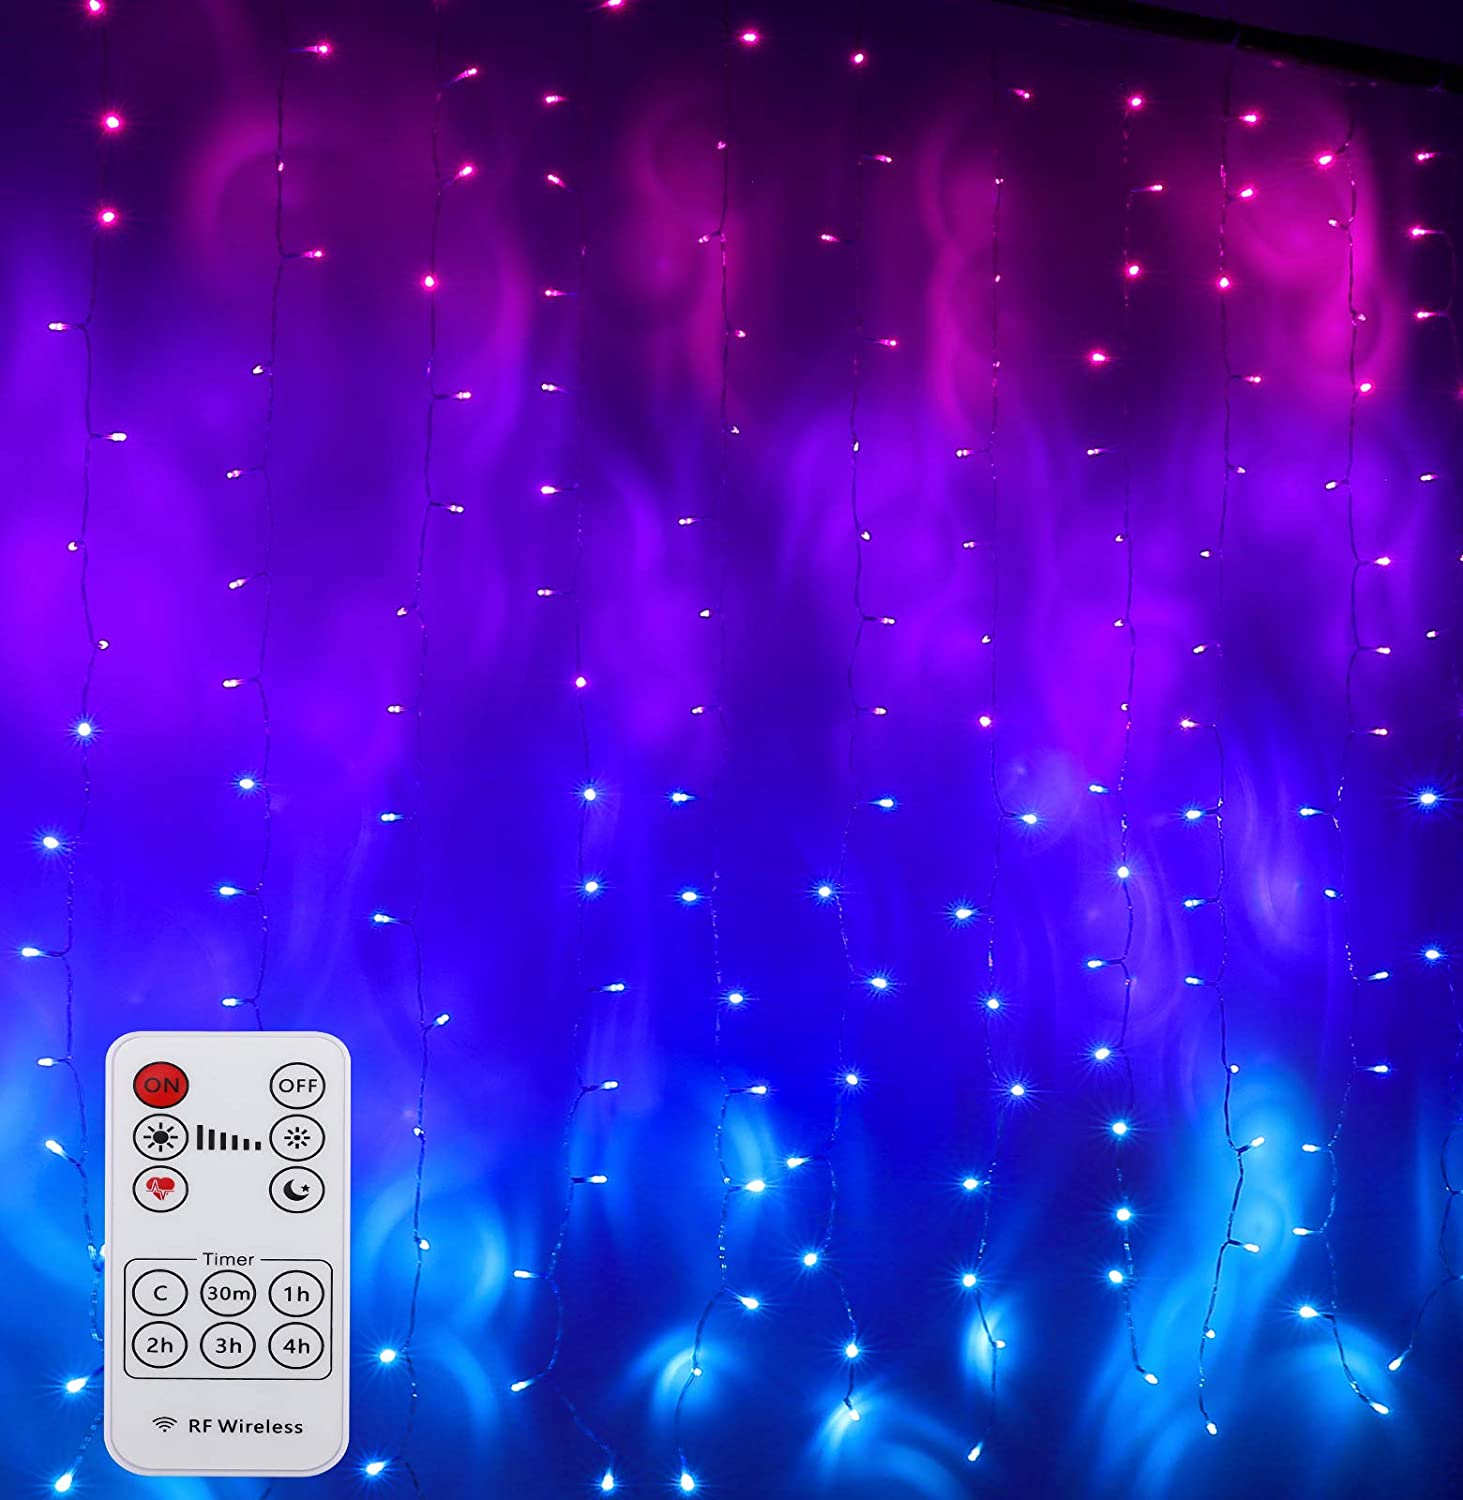 CoziTech Pink Purple & Blue Ombre Fairy Curtain Lights with Remote, Ombre Rainbow LED Icicle String Curtain Lights for Girls Room, Bedroom, Teen Room, Kids Room, Wedding, Holiday, Mermaid Décor